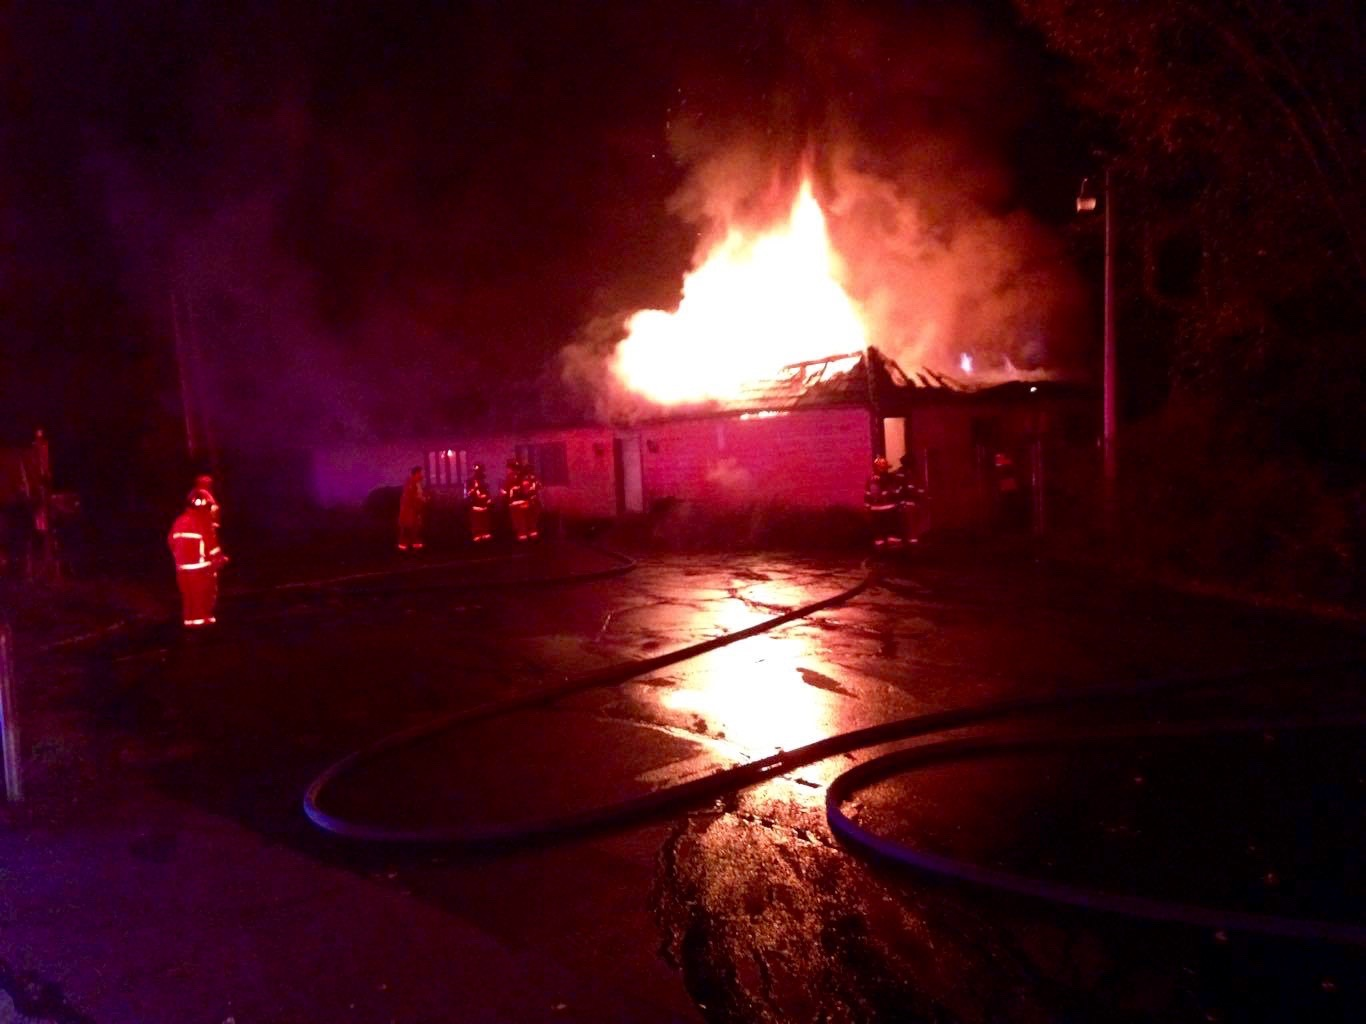 Firefighters from Alfred and several surrounding communities fought a blaze at a commercial building at 122 Sanford Road Friday night. No one was injured. COURTESY PHOTO/Alfred Fire Department